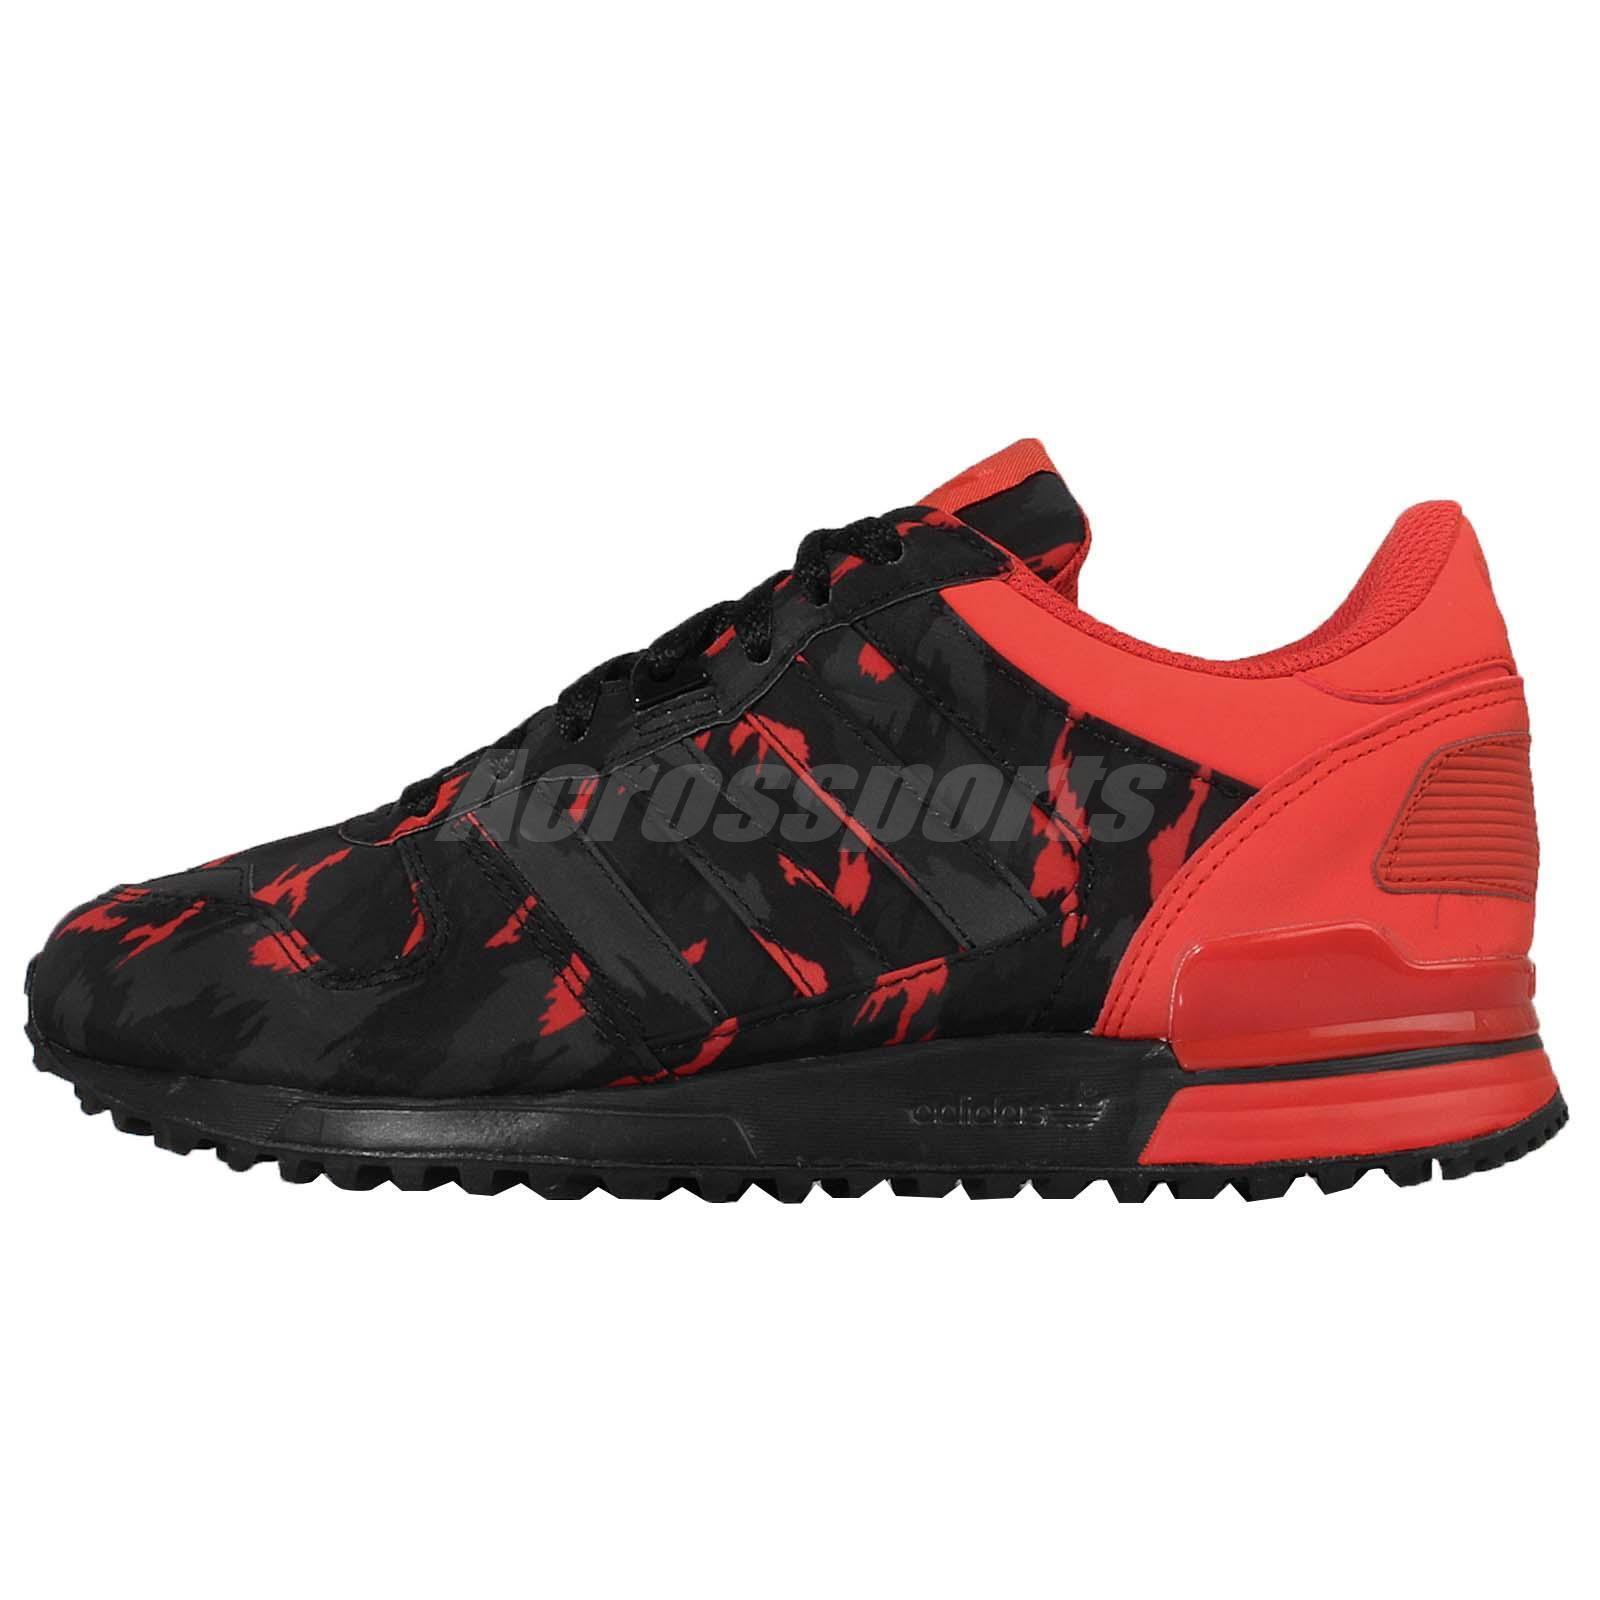 277ac90ee hot sale 2017 Adidas Originals ZX 700 Black Red Mens Running Shoes Sneakers  B24837